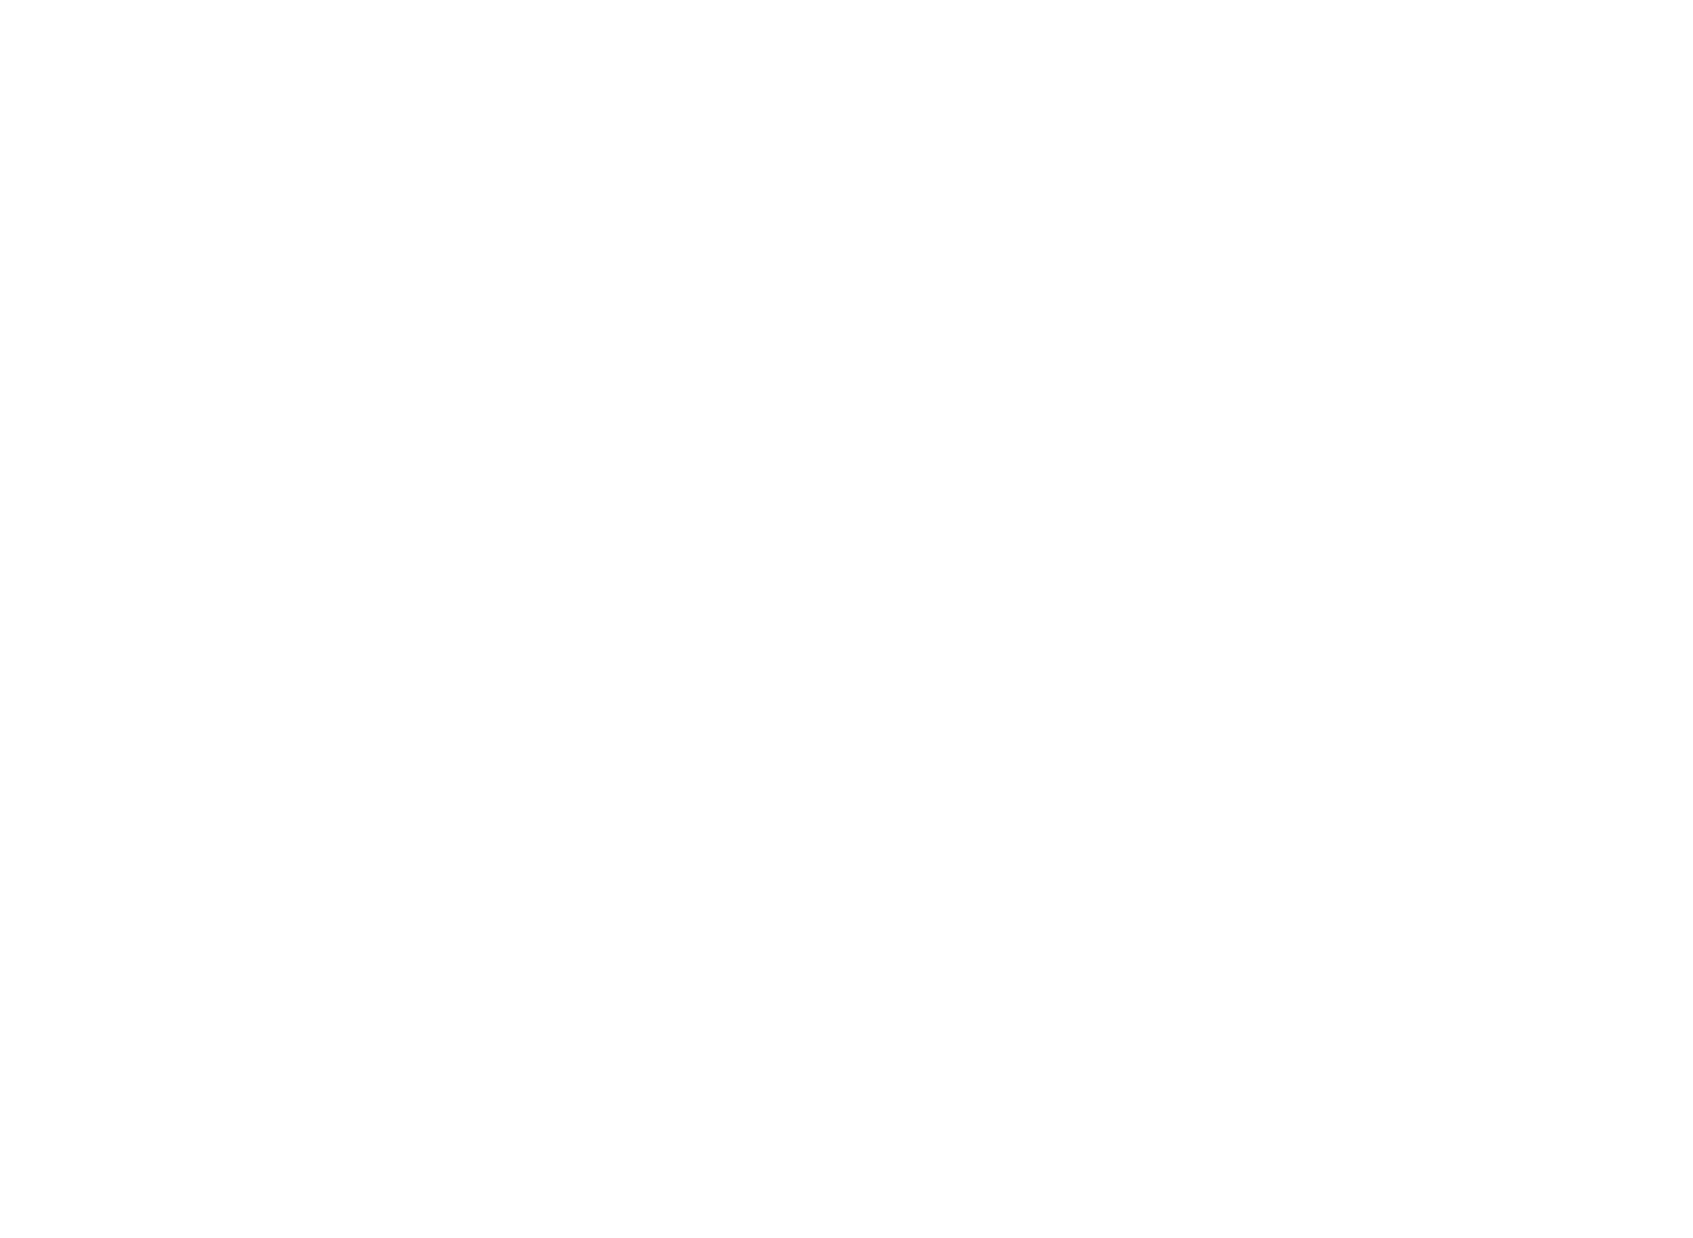 Qualified Member Personal Finance Soiciety